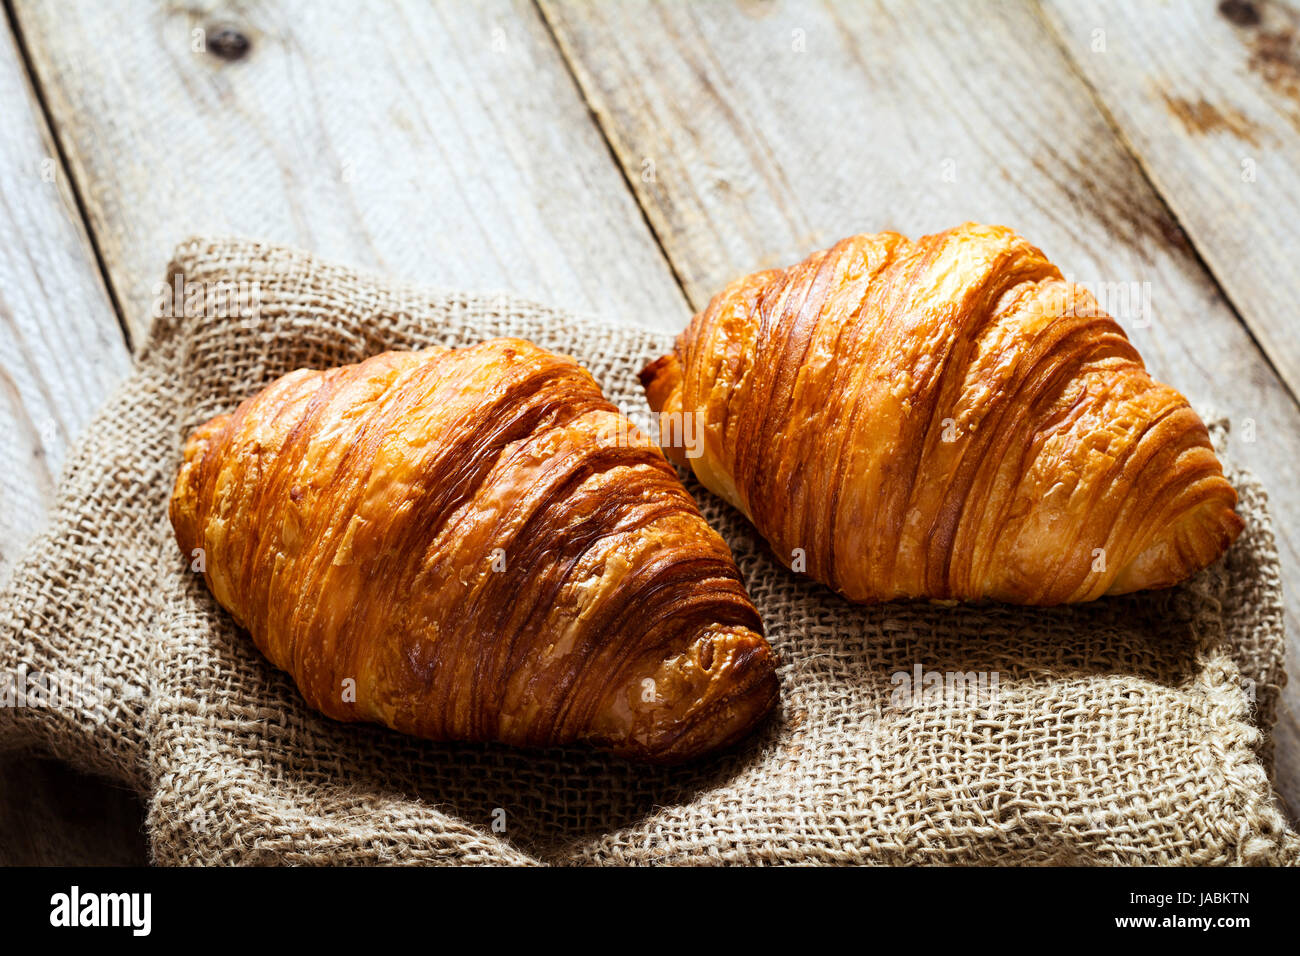 Two fresh croissants on burlap textile on rustic wooden table. Closeup view - Stock Image